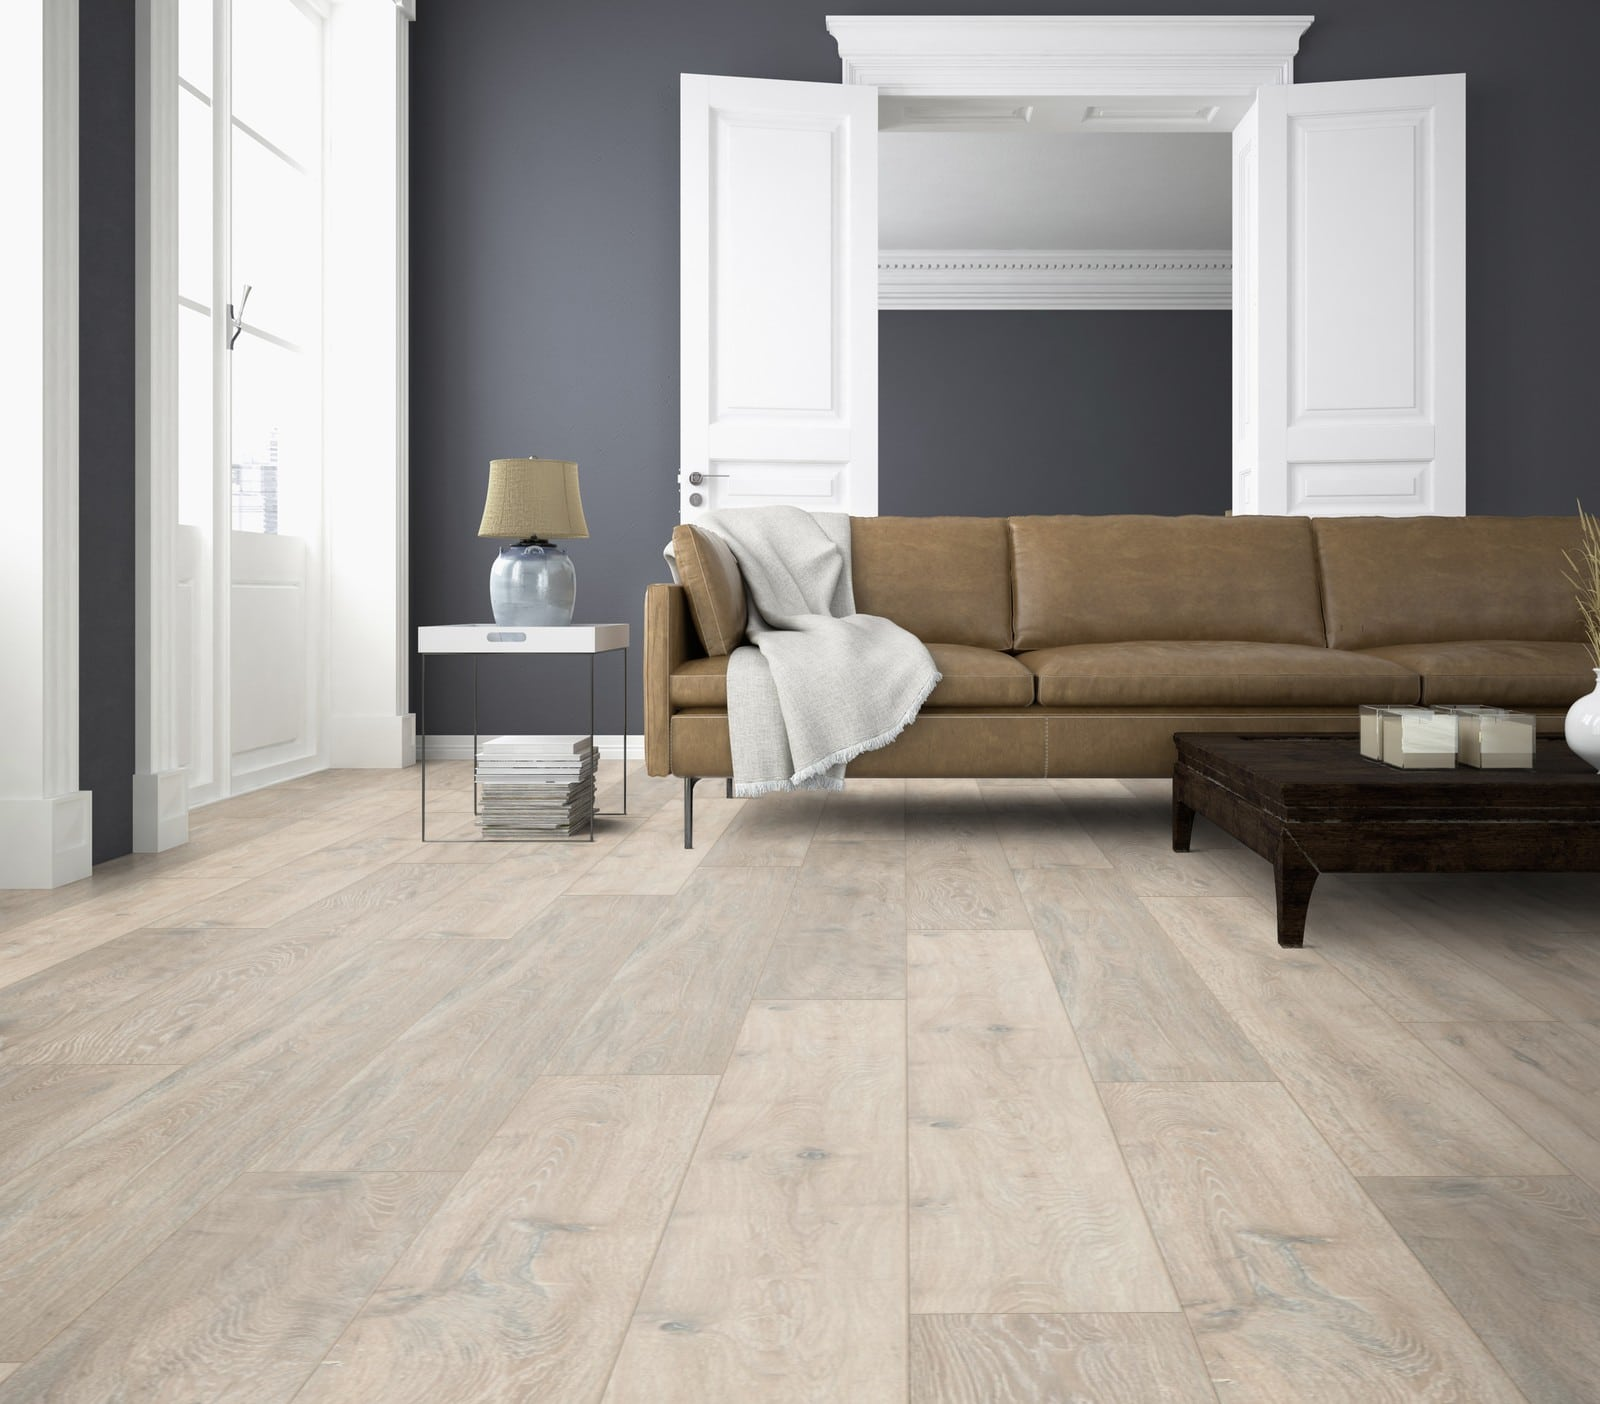 La06 ter hürne oak moon grey laminate long plank living room